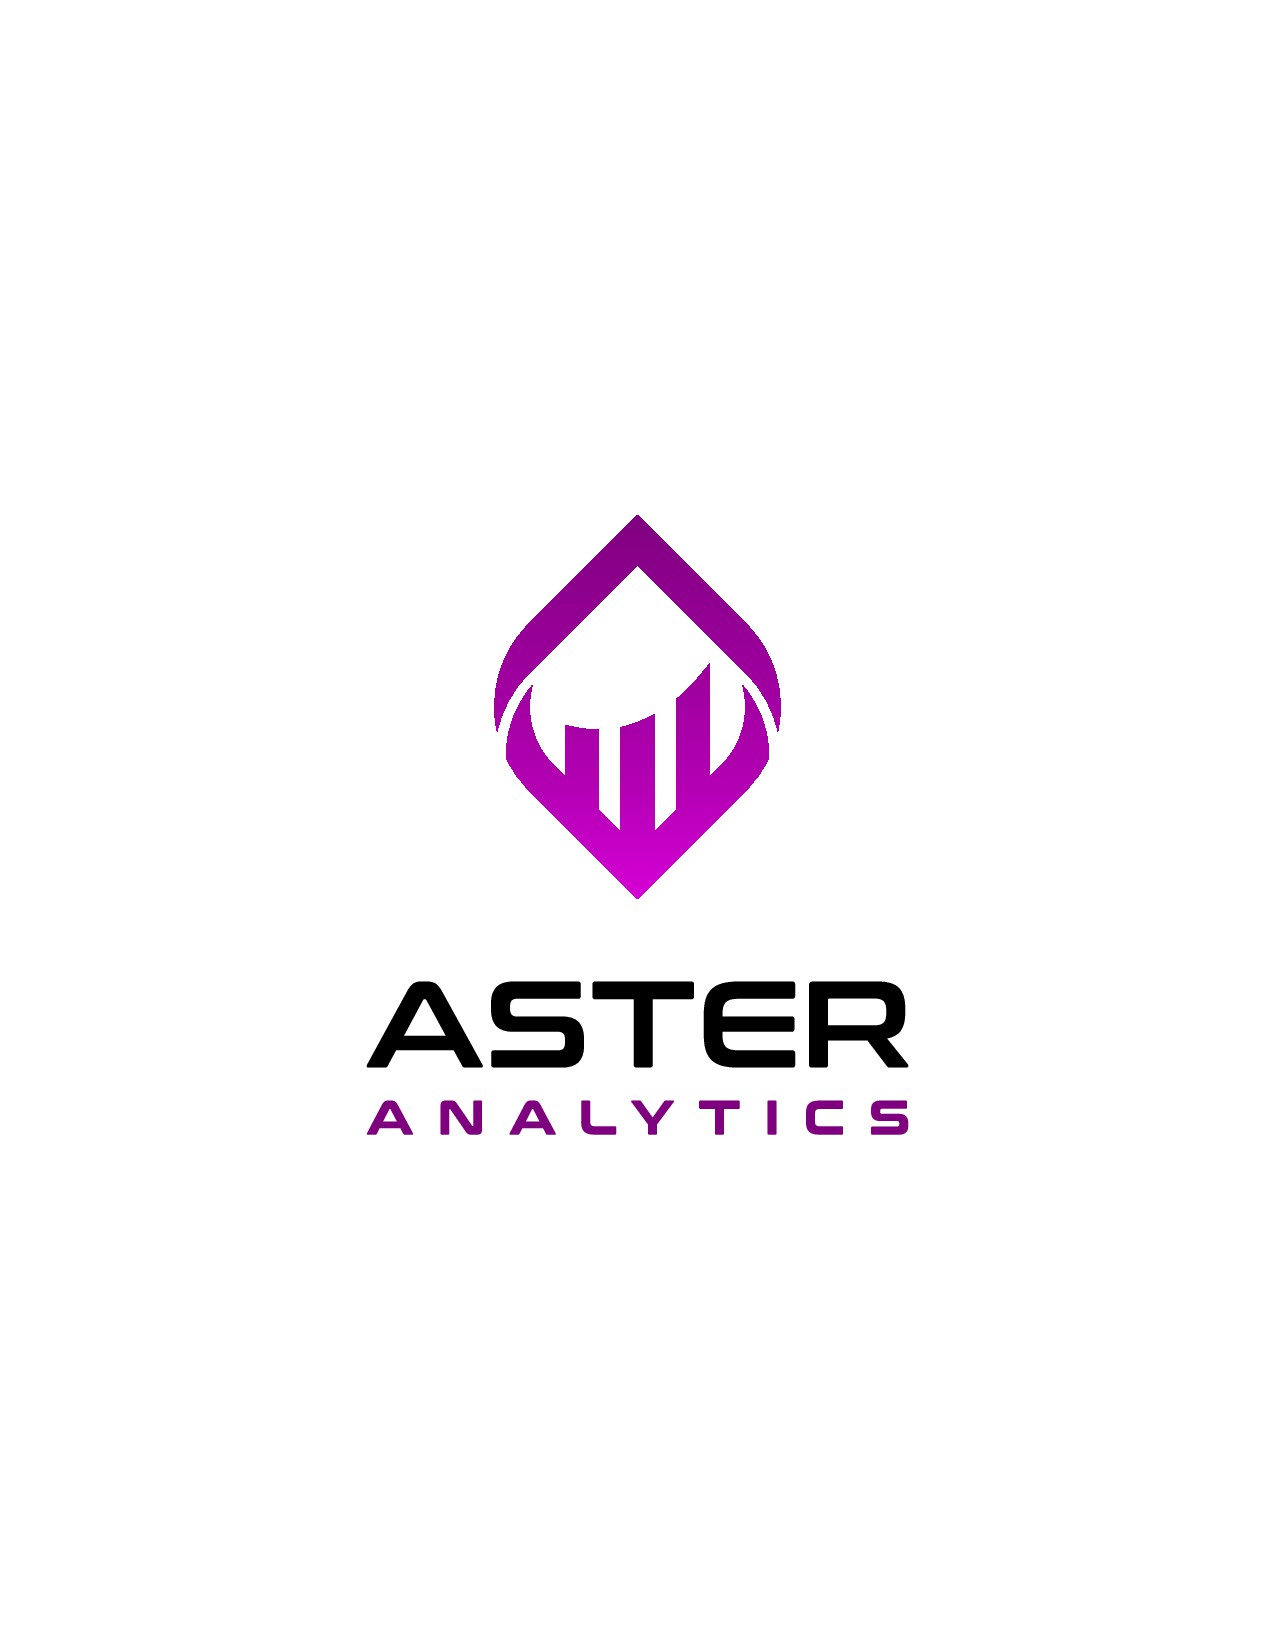 We need a Logo for an Analytics/BI -Software company